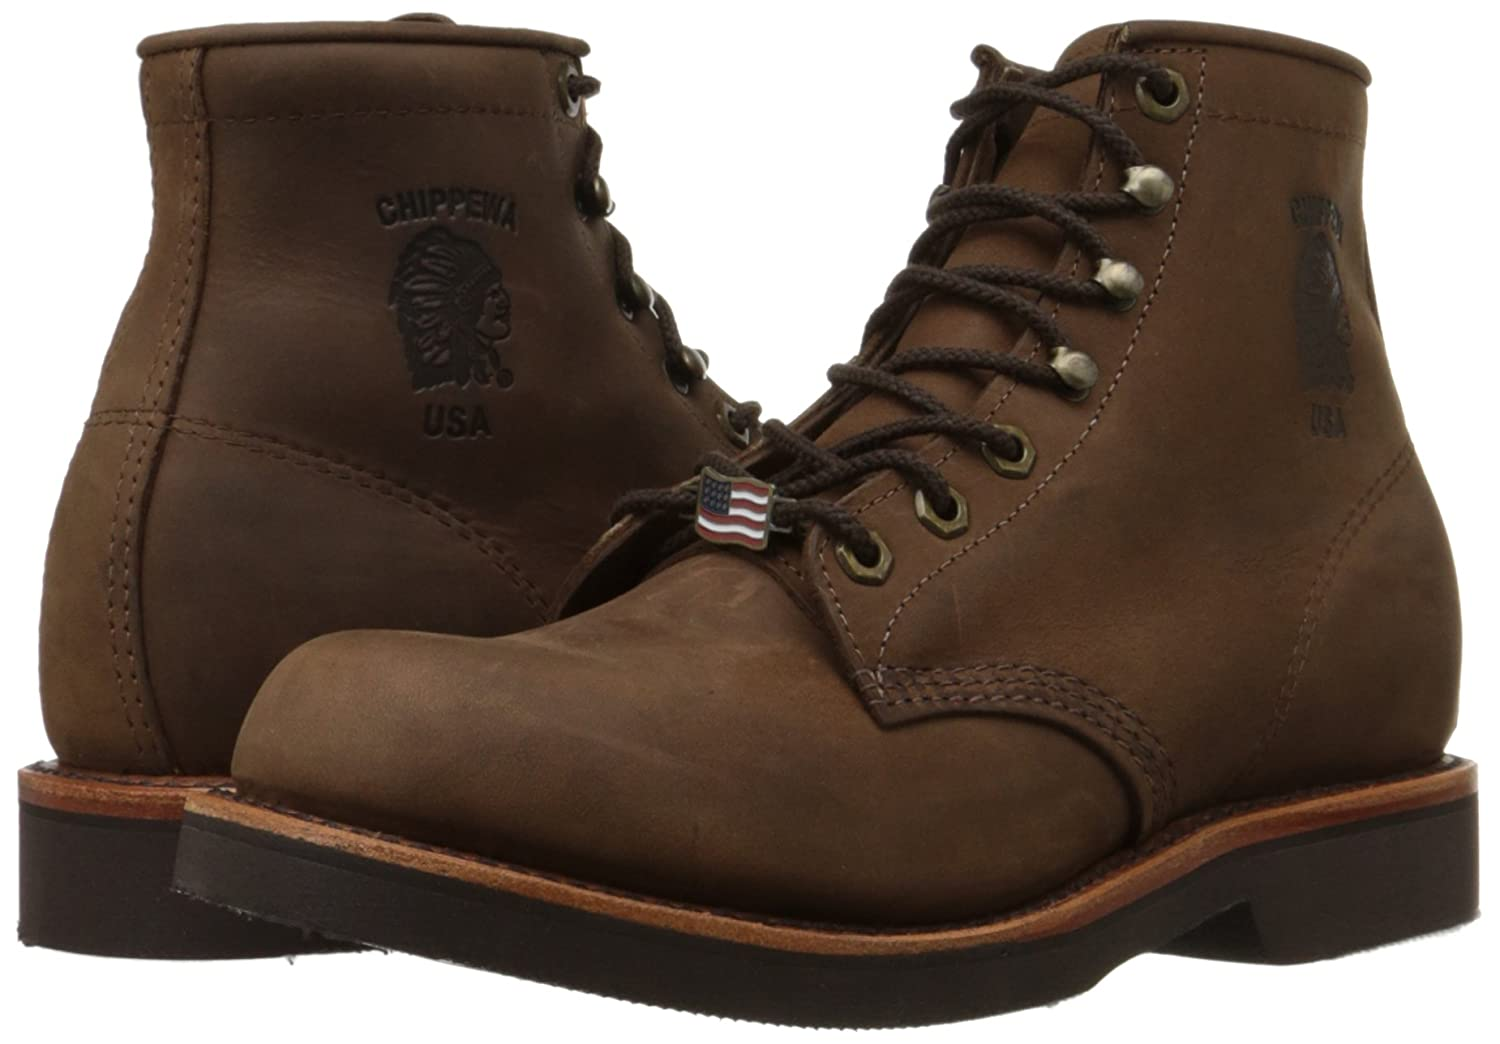 Chippewa Mens 6 Rugged Handcrafted Lace-Up Boot